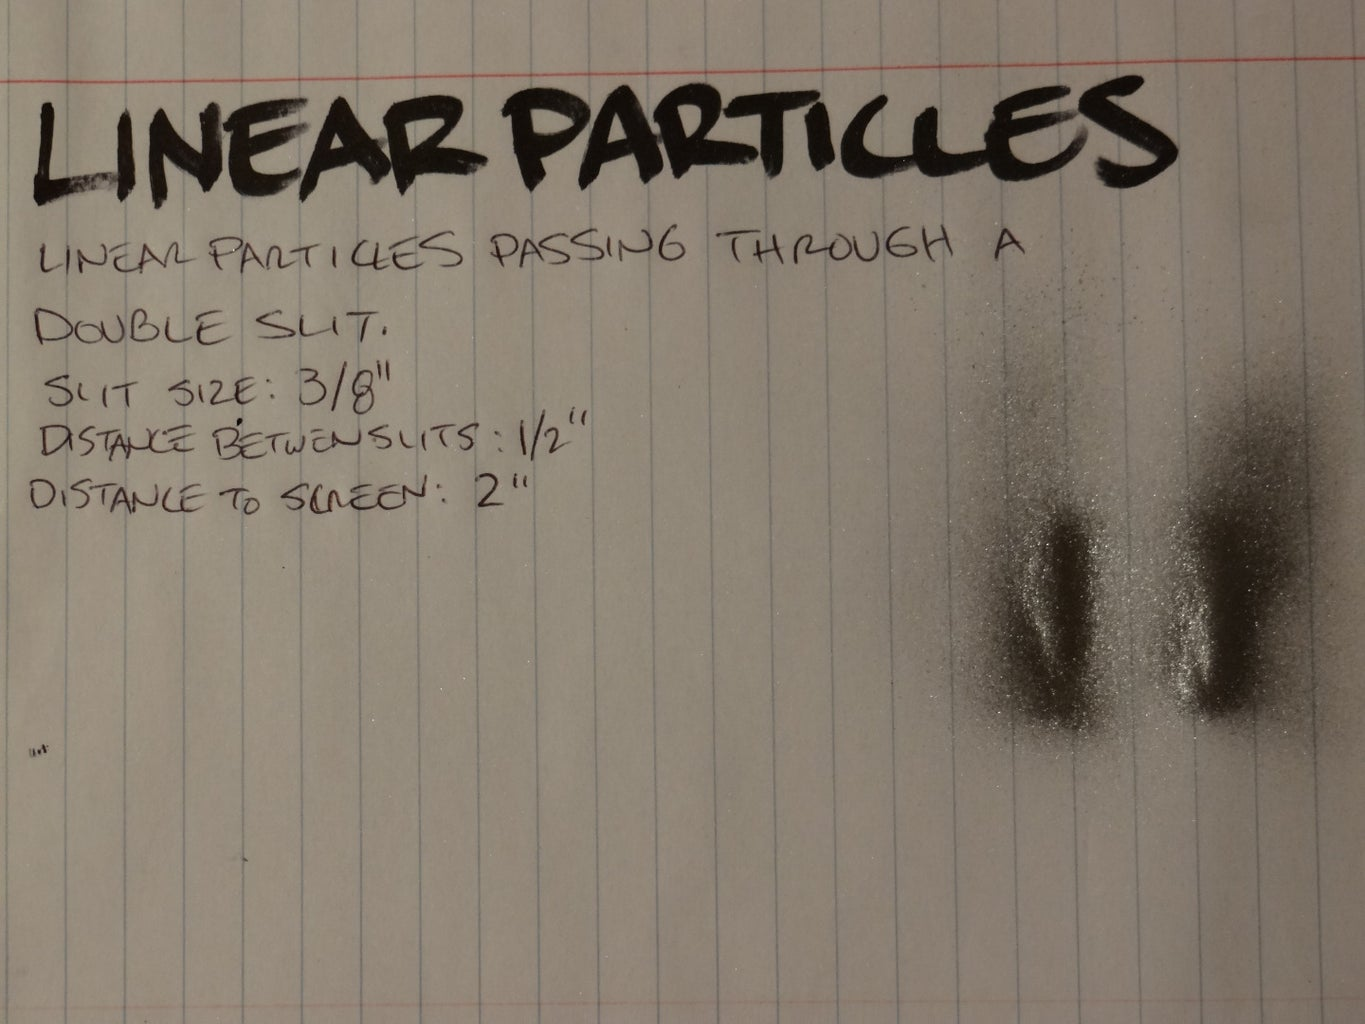 Hypothesize: What Happens If Particles Pass Through Two Slits?